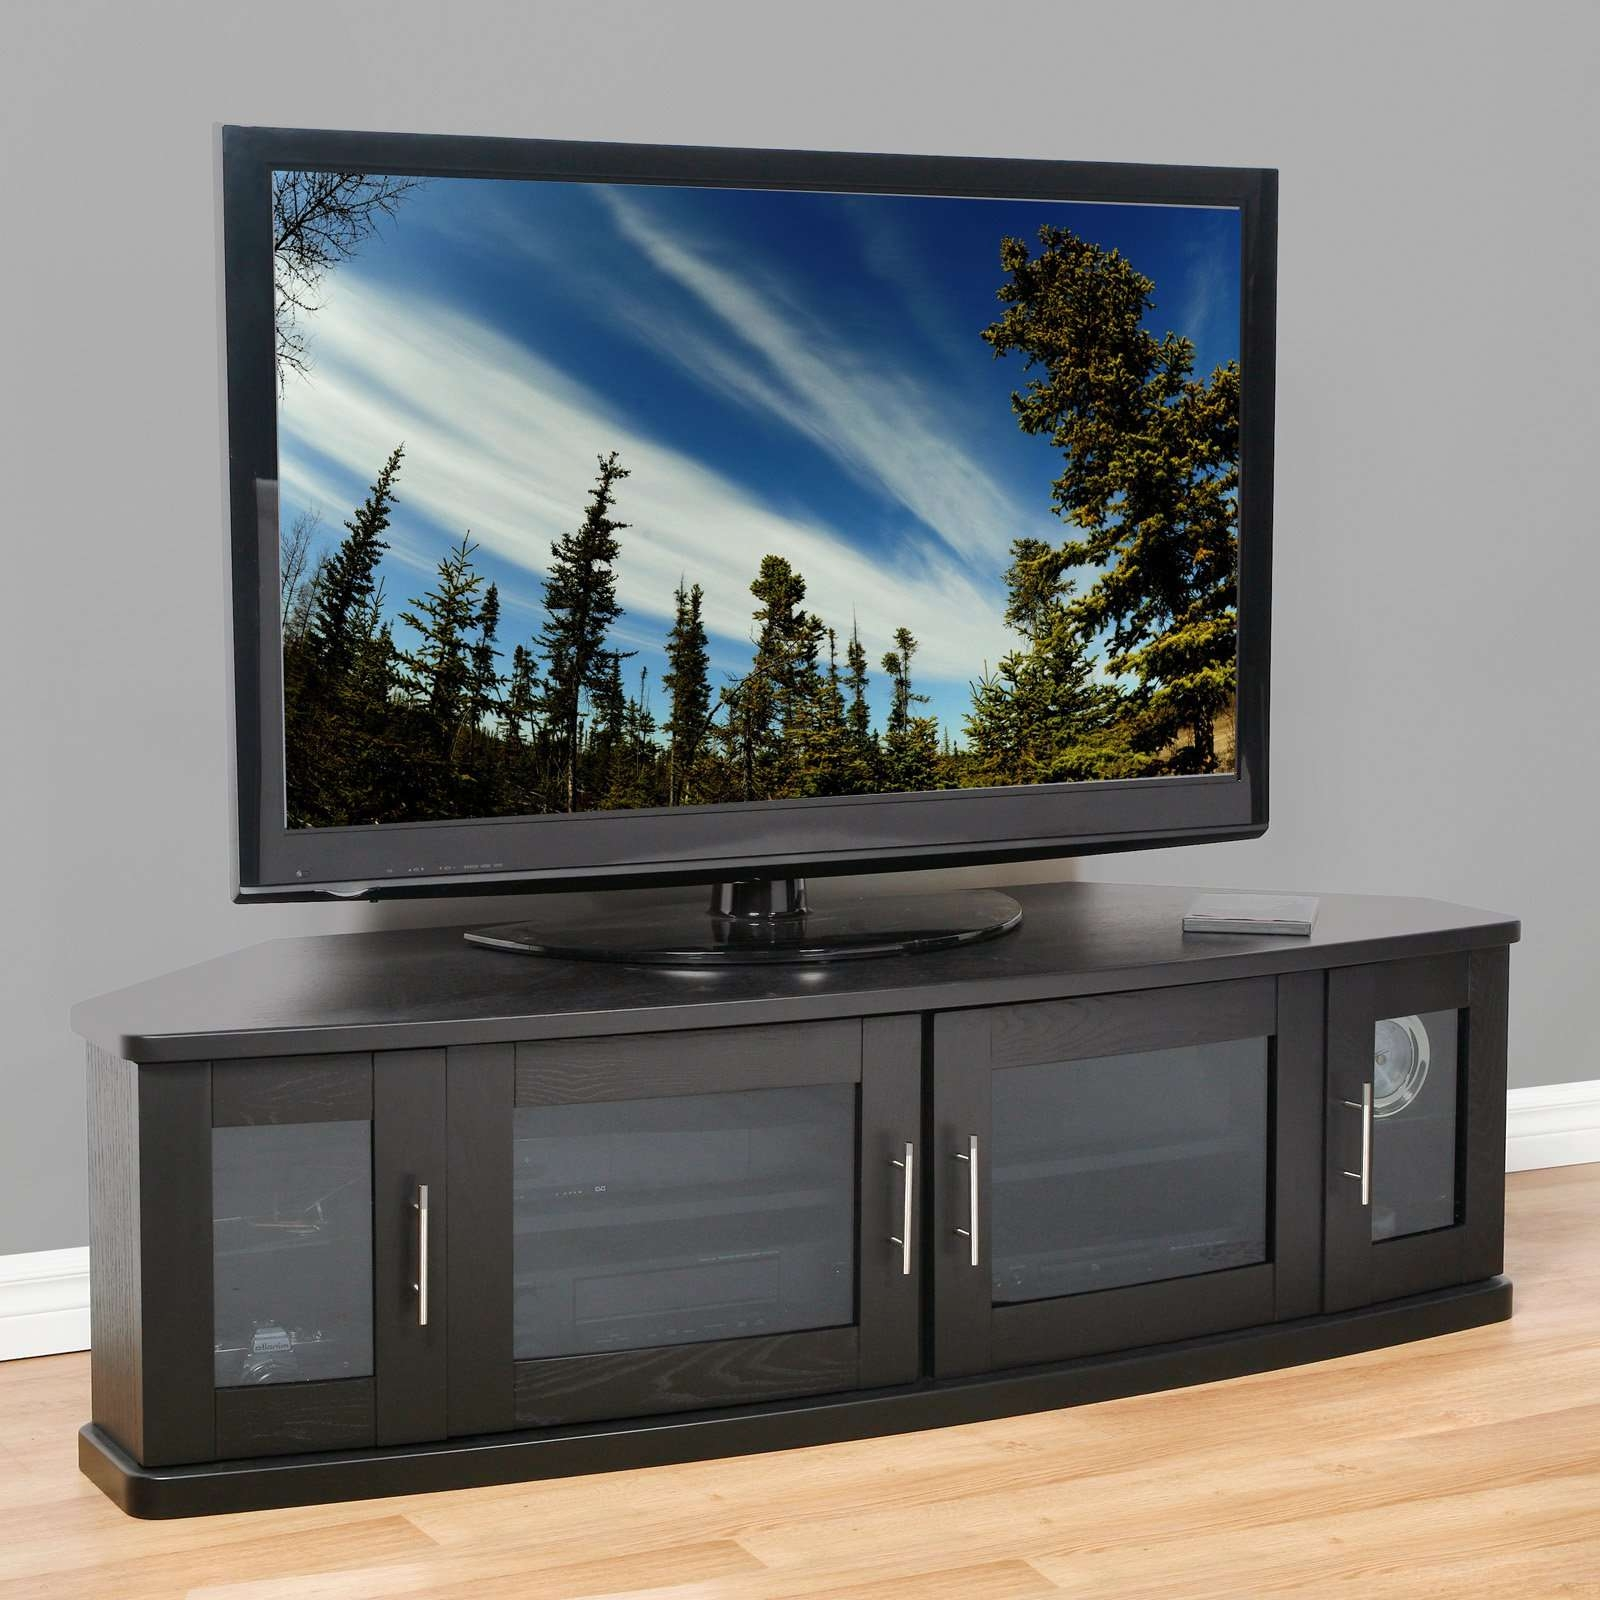 Modern Black Wooden Tv Stand With Frosted Glass Doors Of Dazzling With Wooden Tv Cabinets With Glass Doors (View 12 of 20)